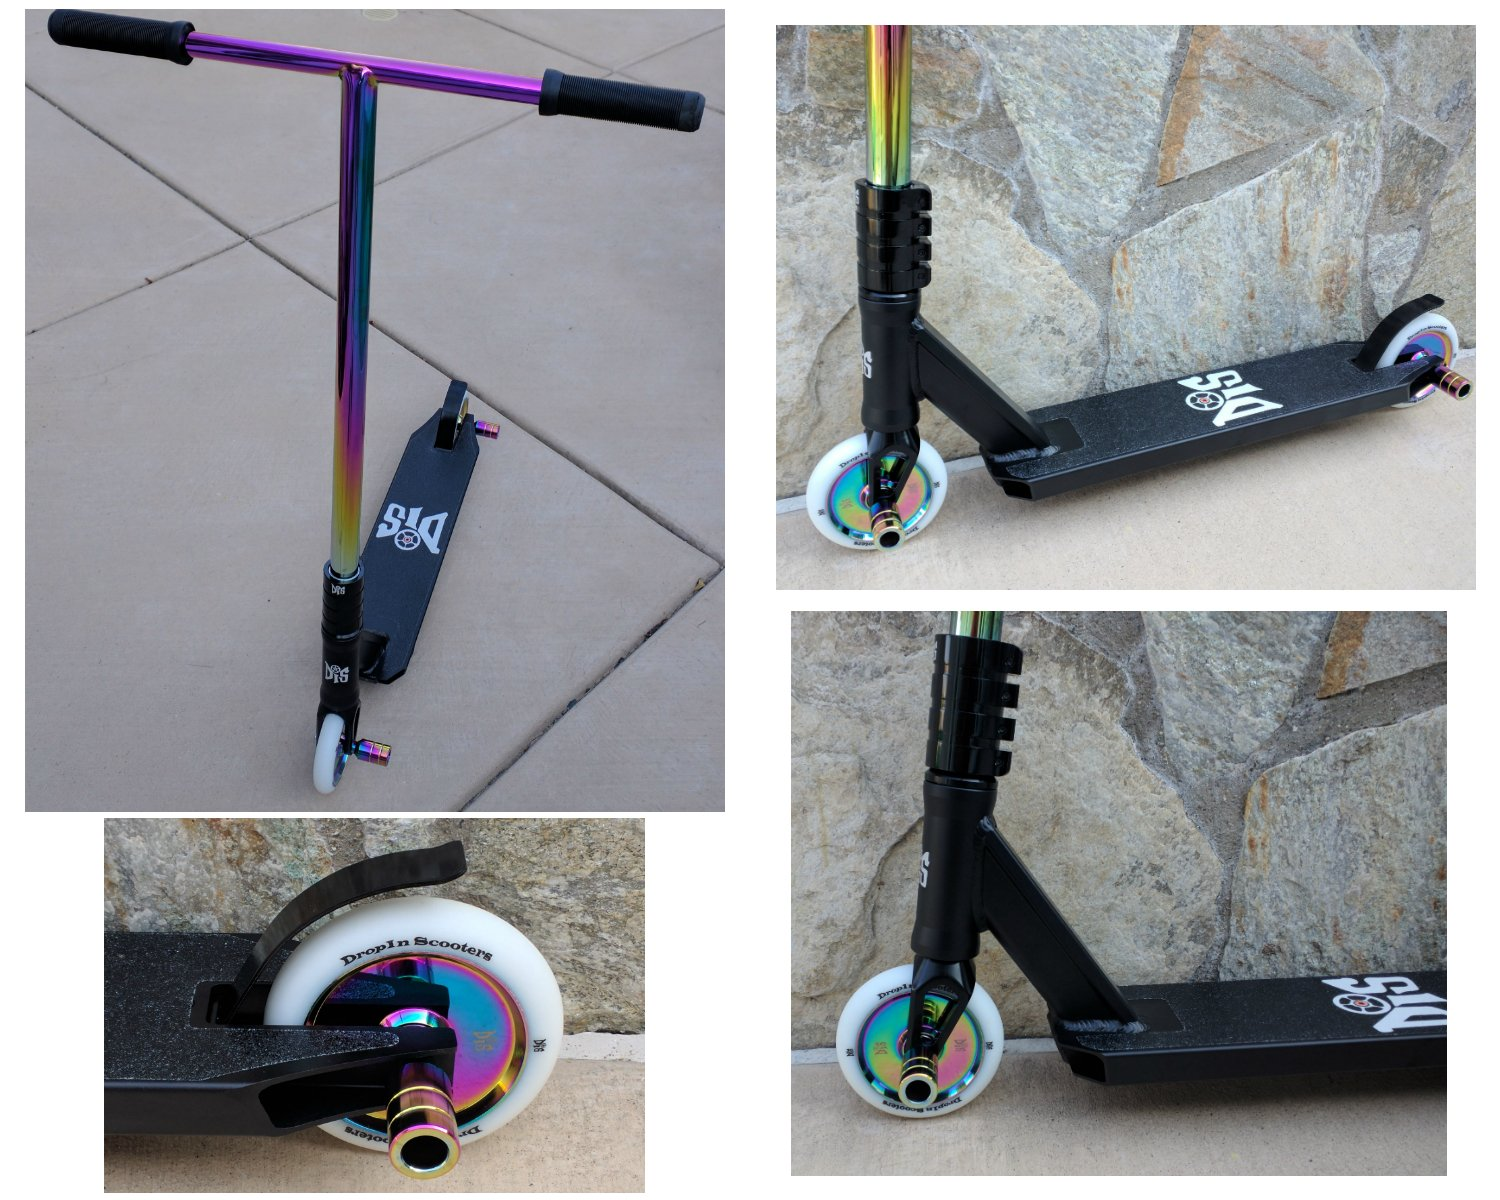 DIS Slick Blackout Custom Pro Complete Scooter Professionally Assembled